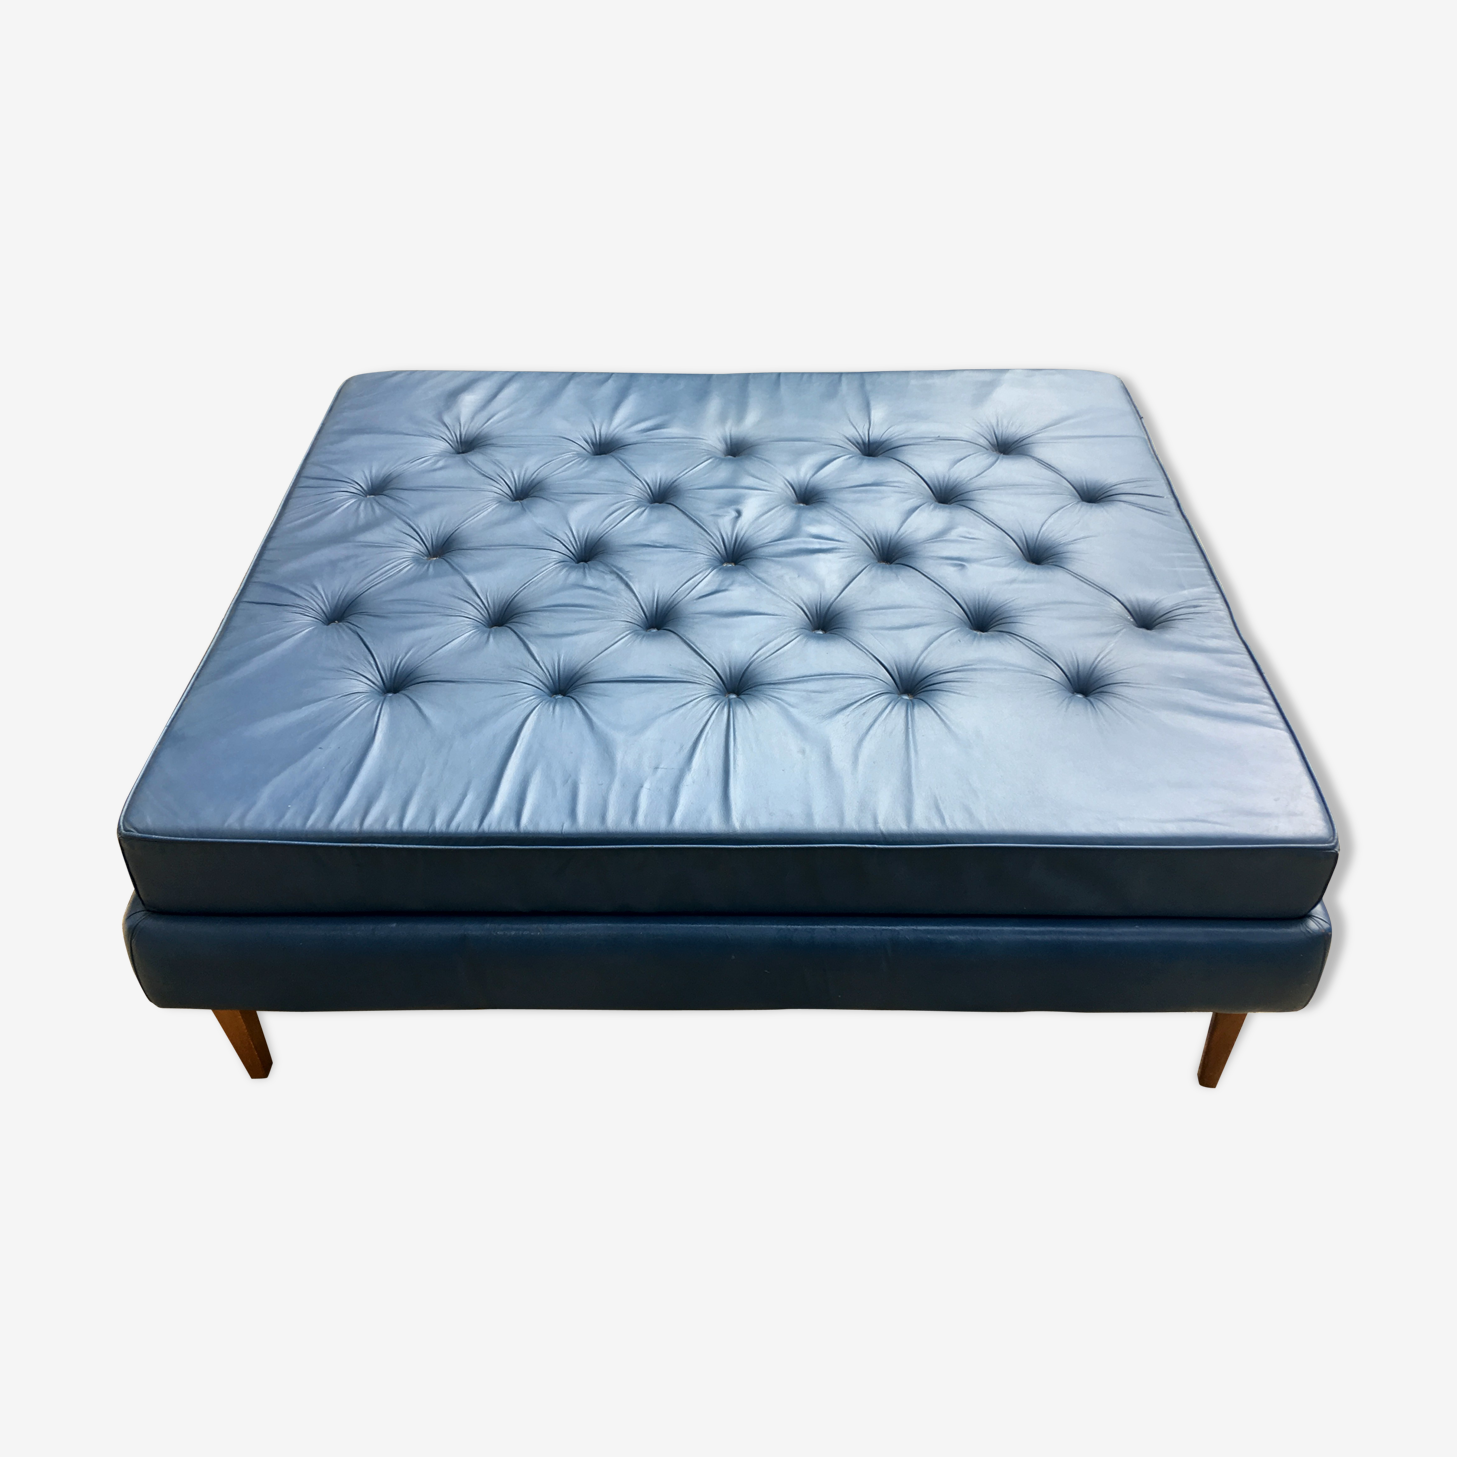 Daybed 130x150cm